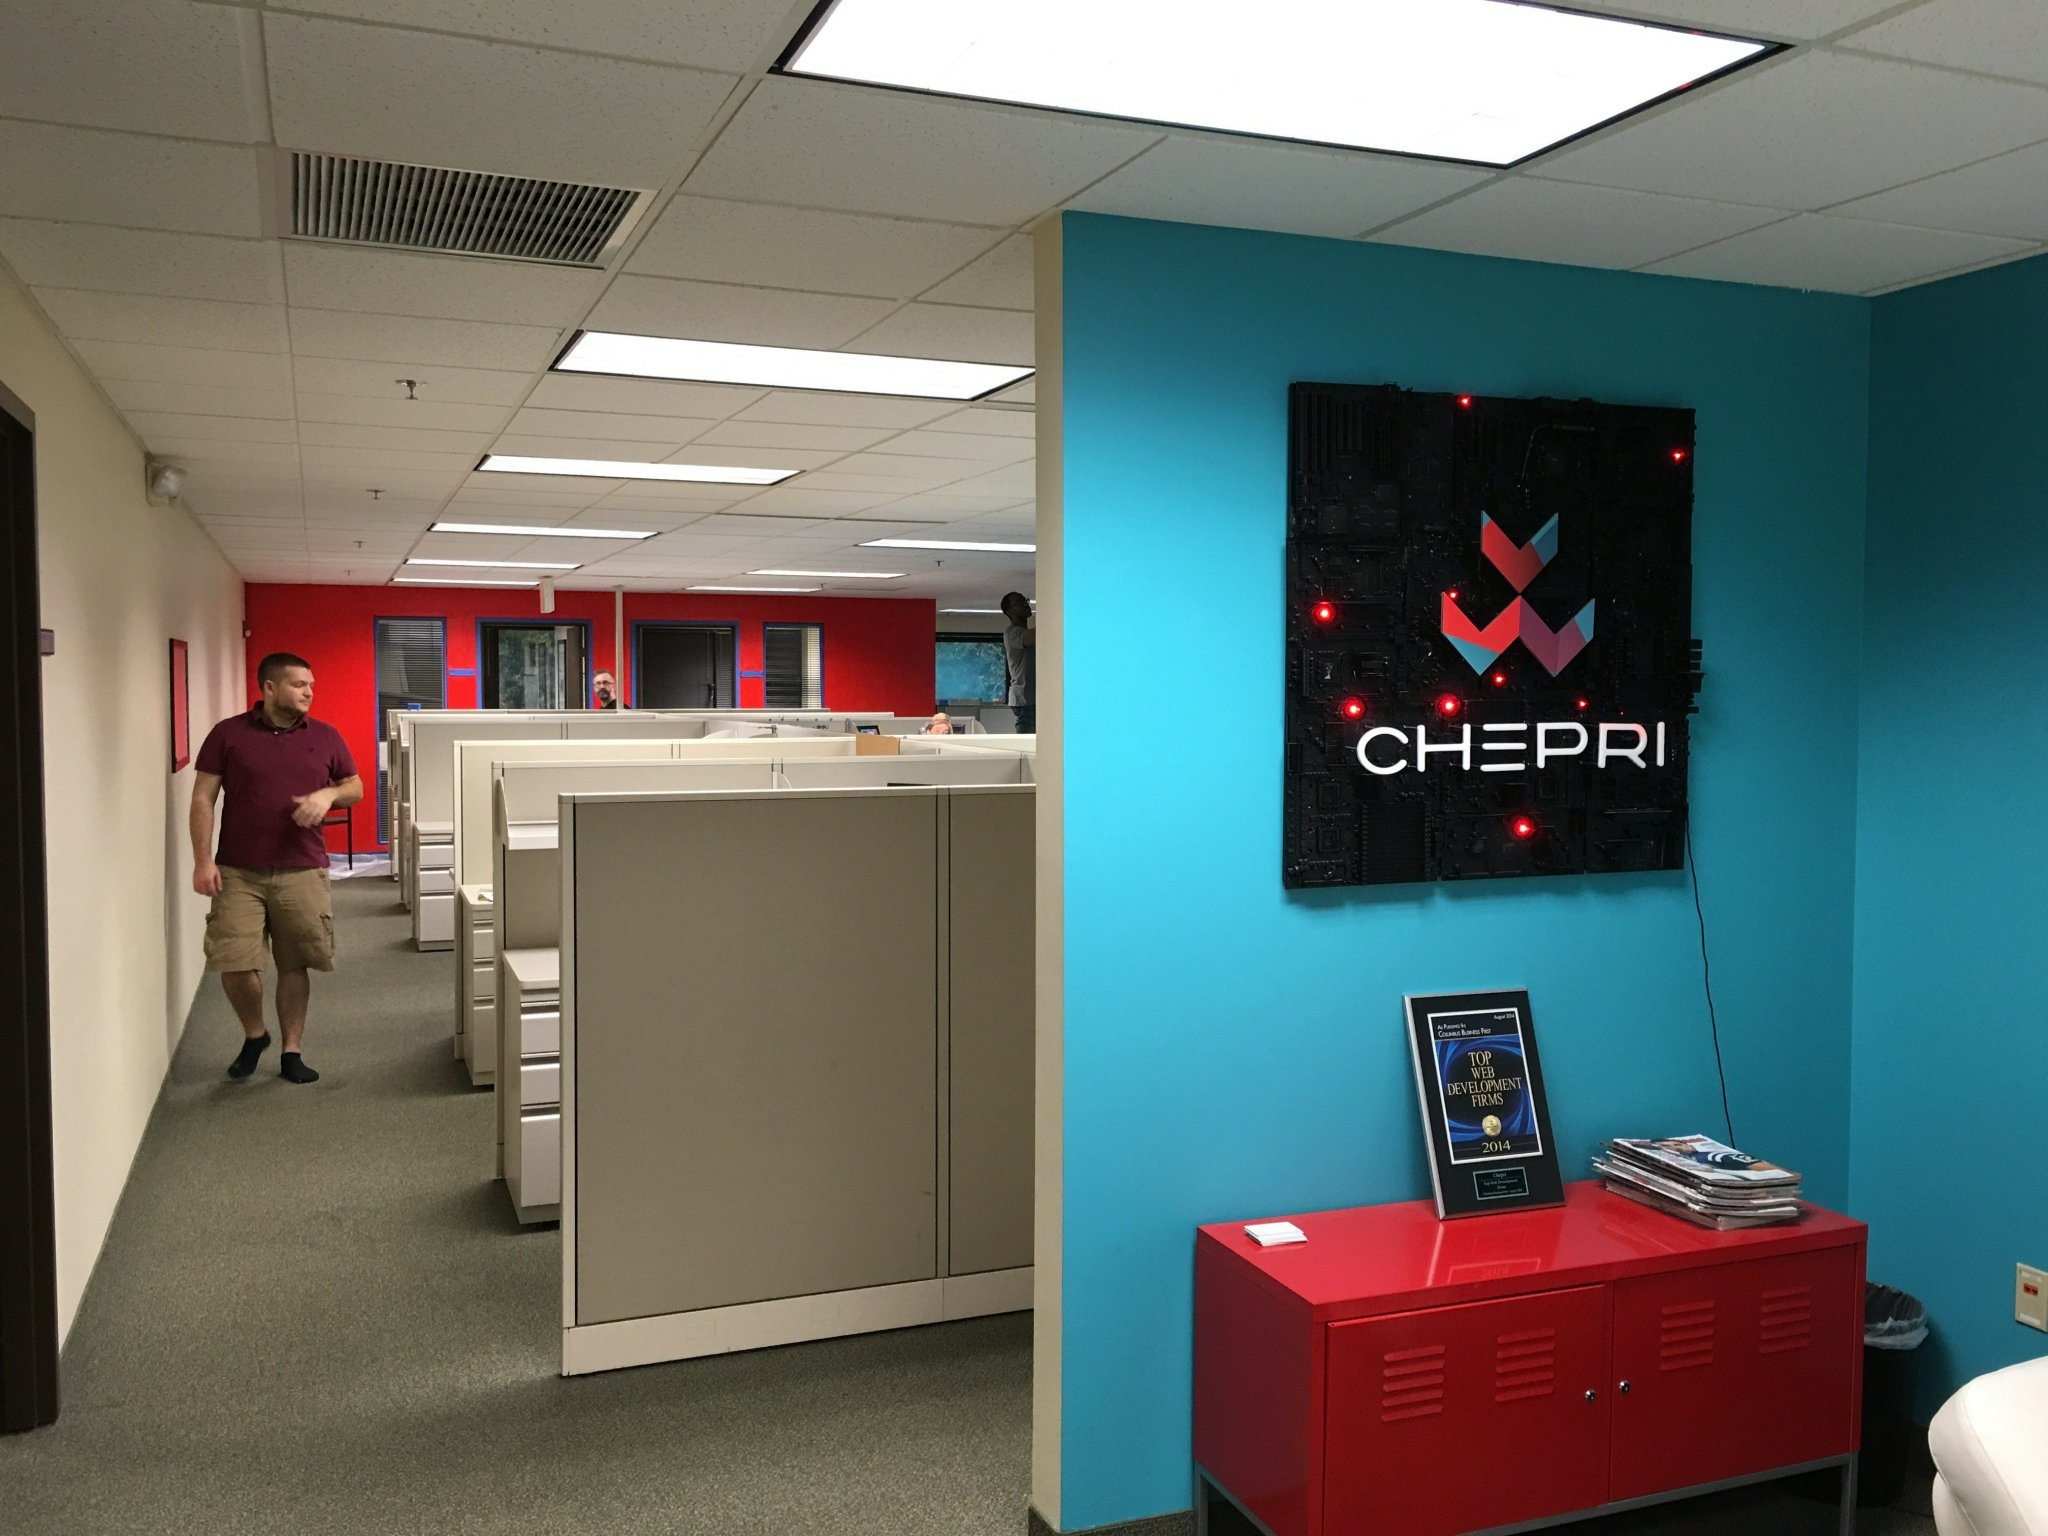 Celebrating teamwork and fresh paint at Chepri